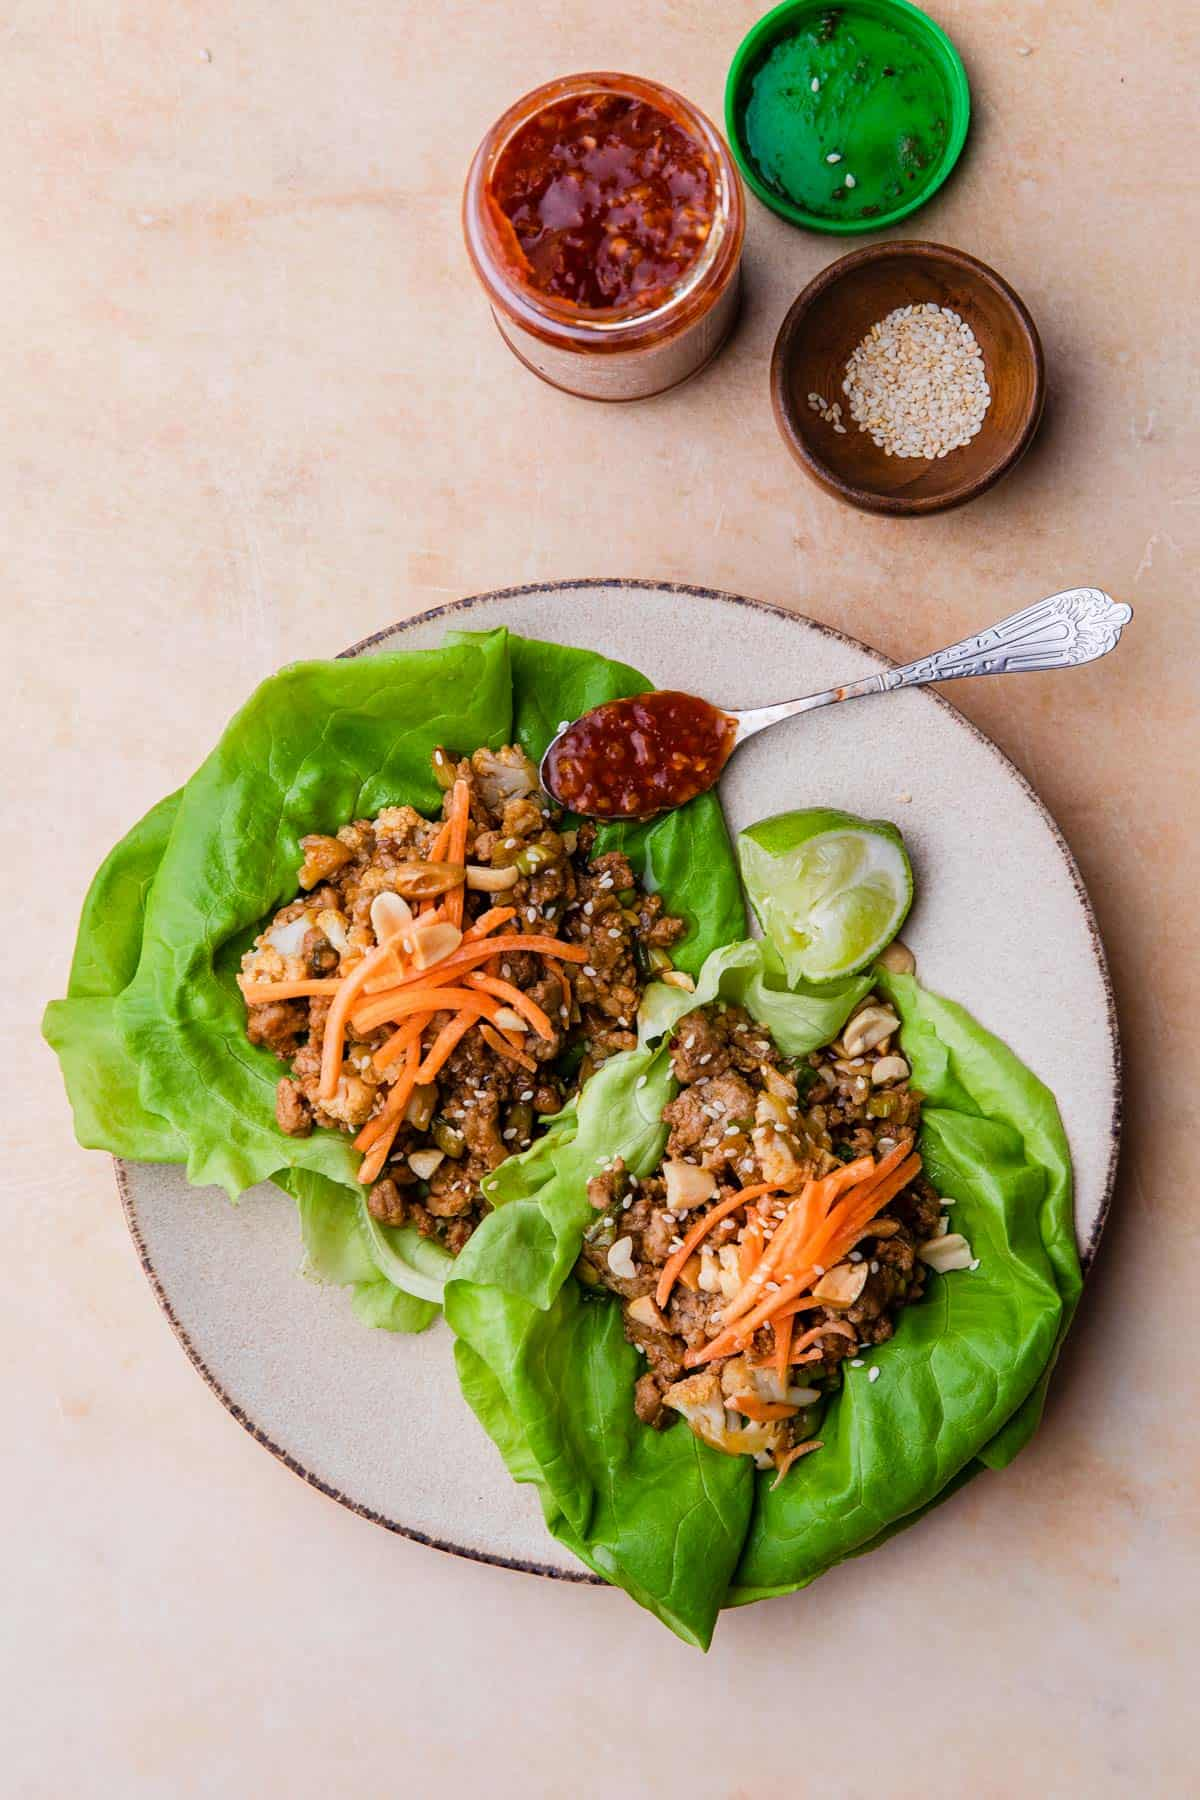 lettuce wraps on a plate with chili garlic sauce on the side